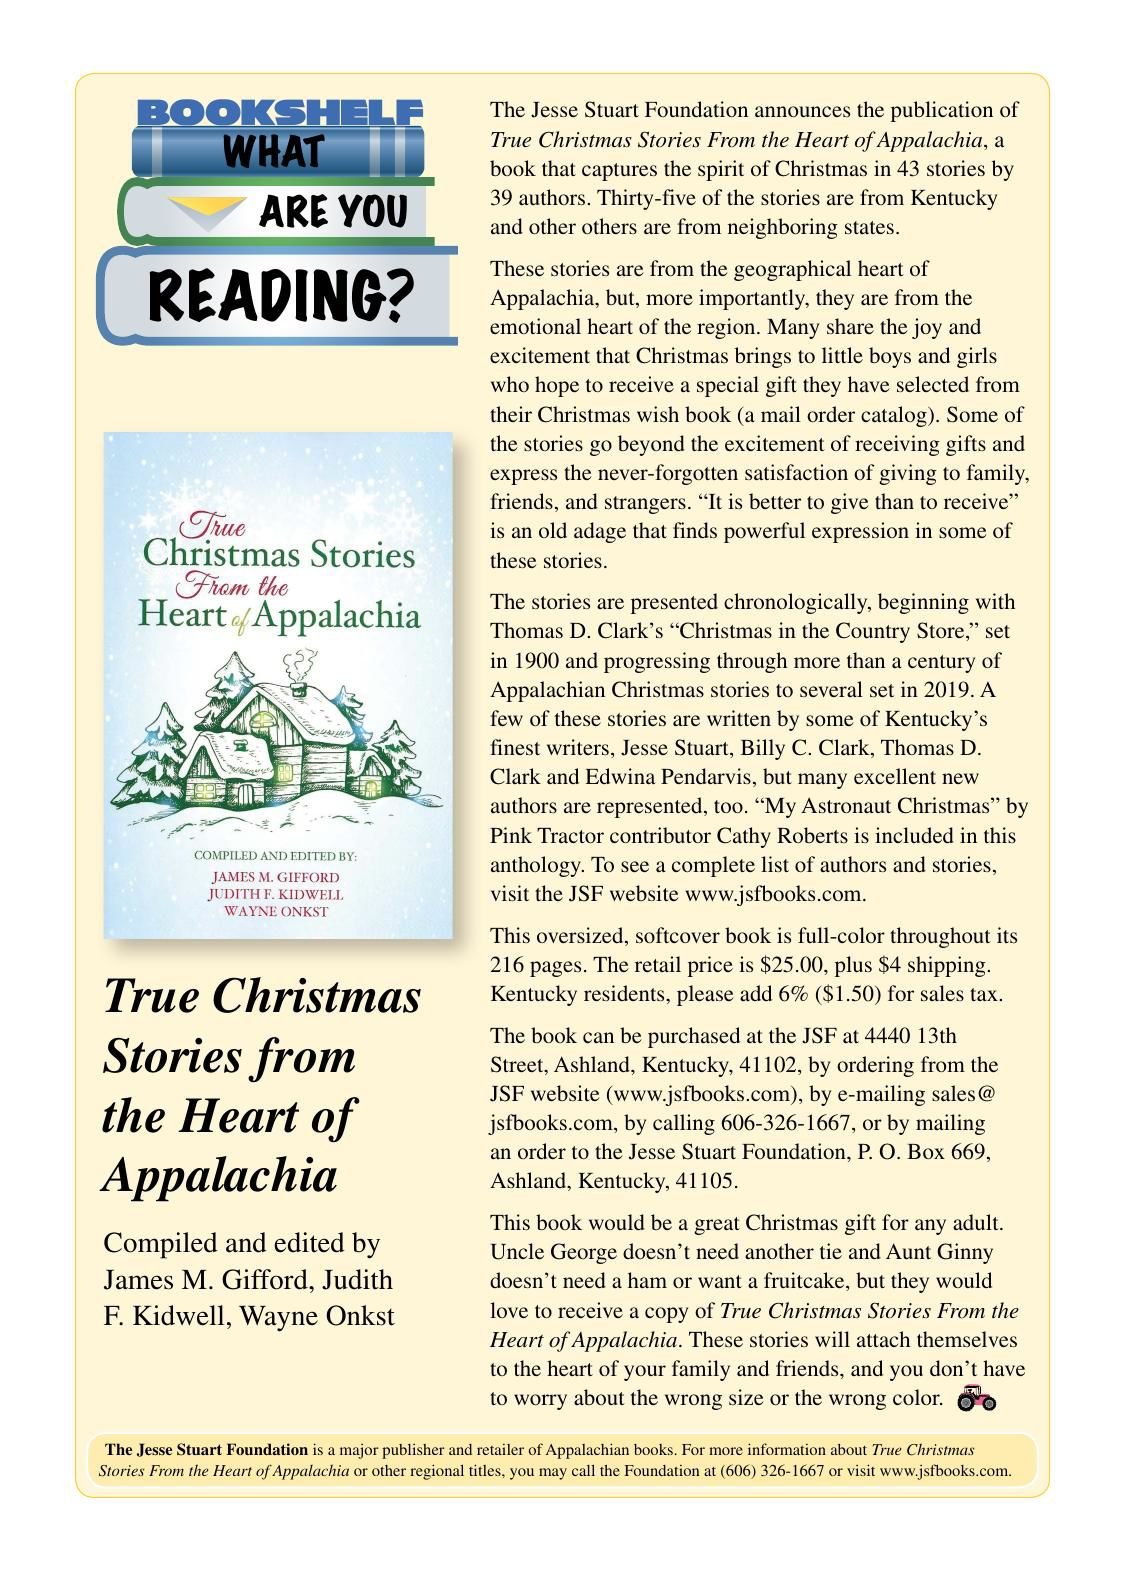 True Christmas Stories from the Heart of the Appalachia